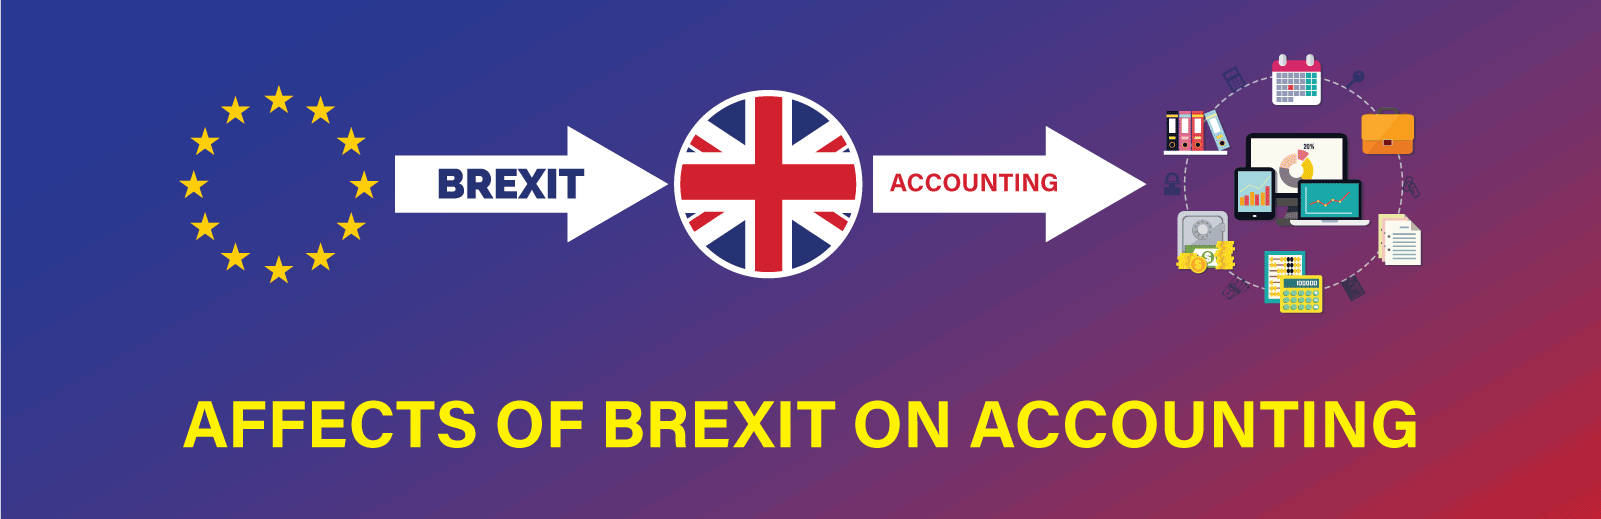 Brexit and Accounting 2019 July